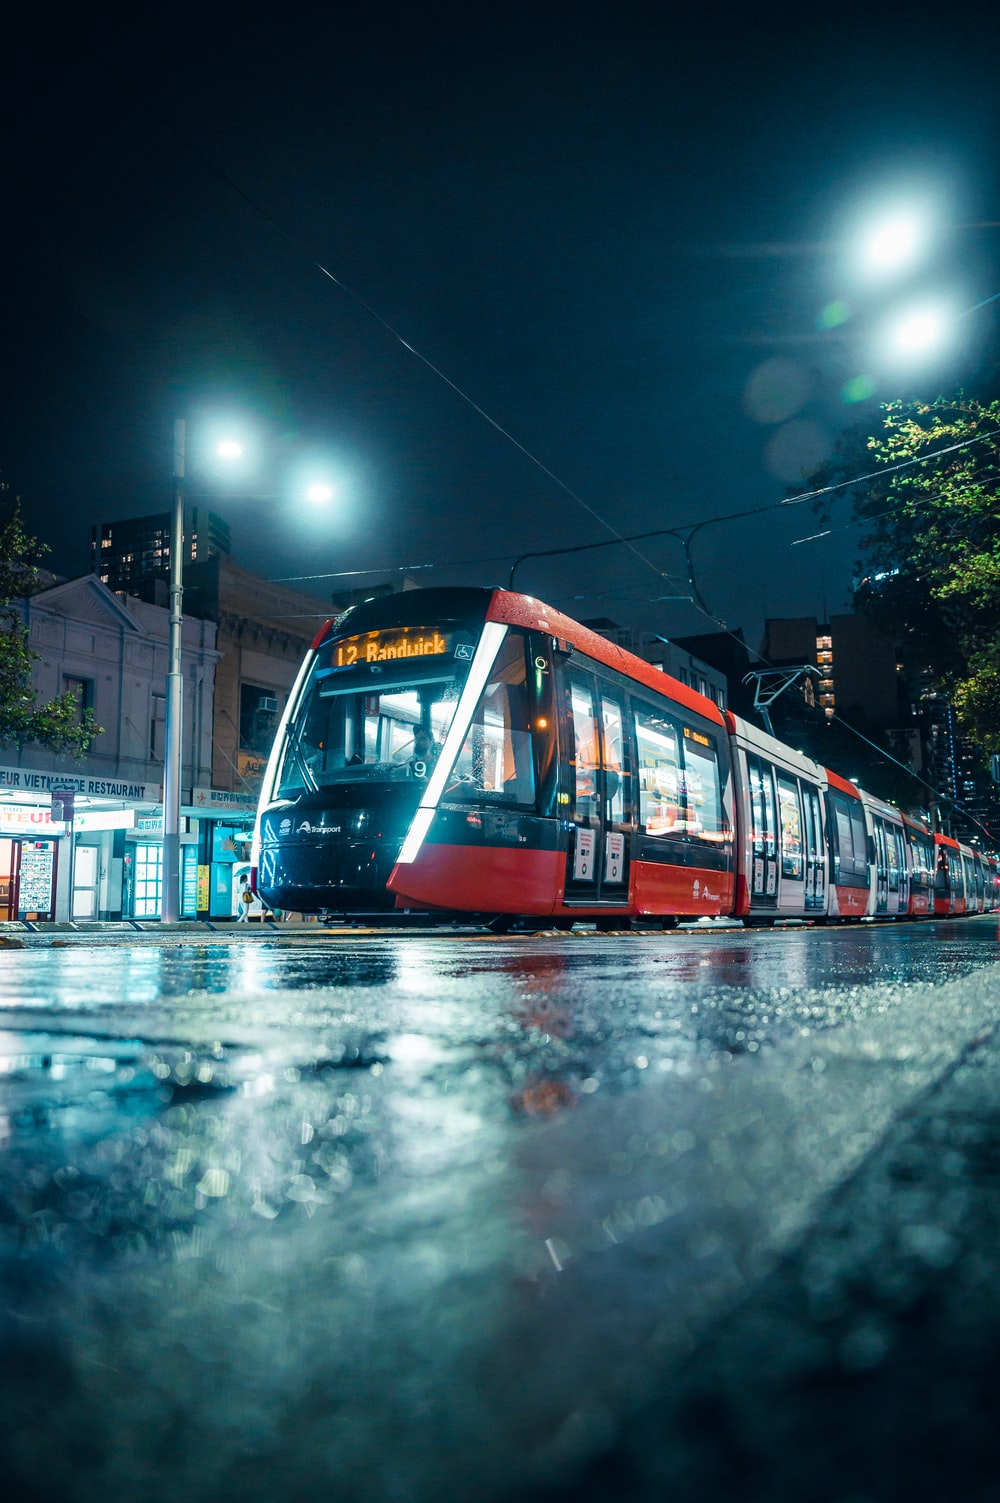 red and white tram on road during night time